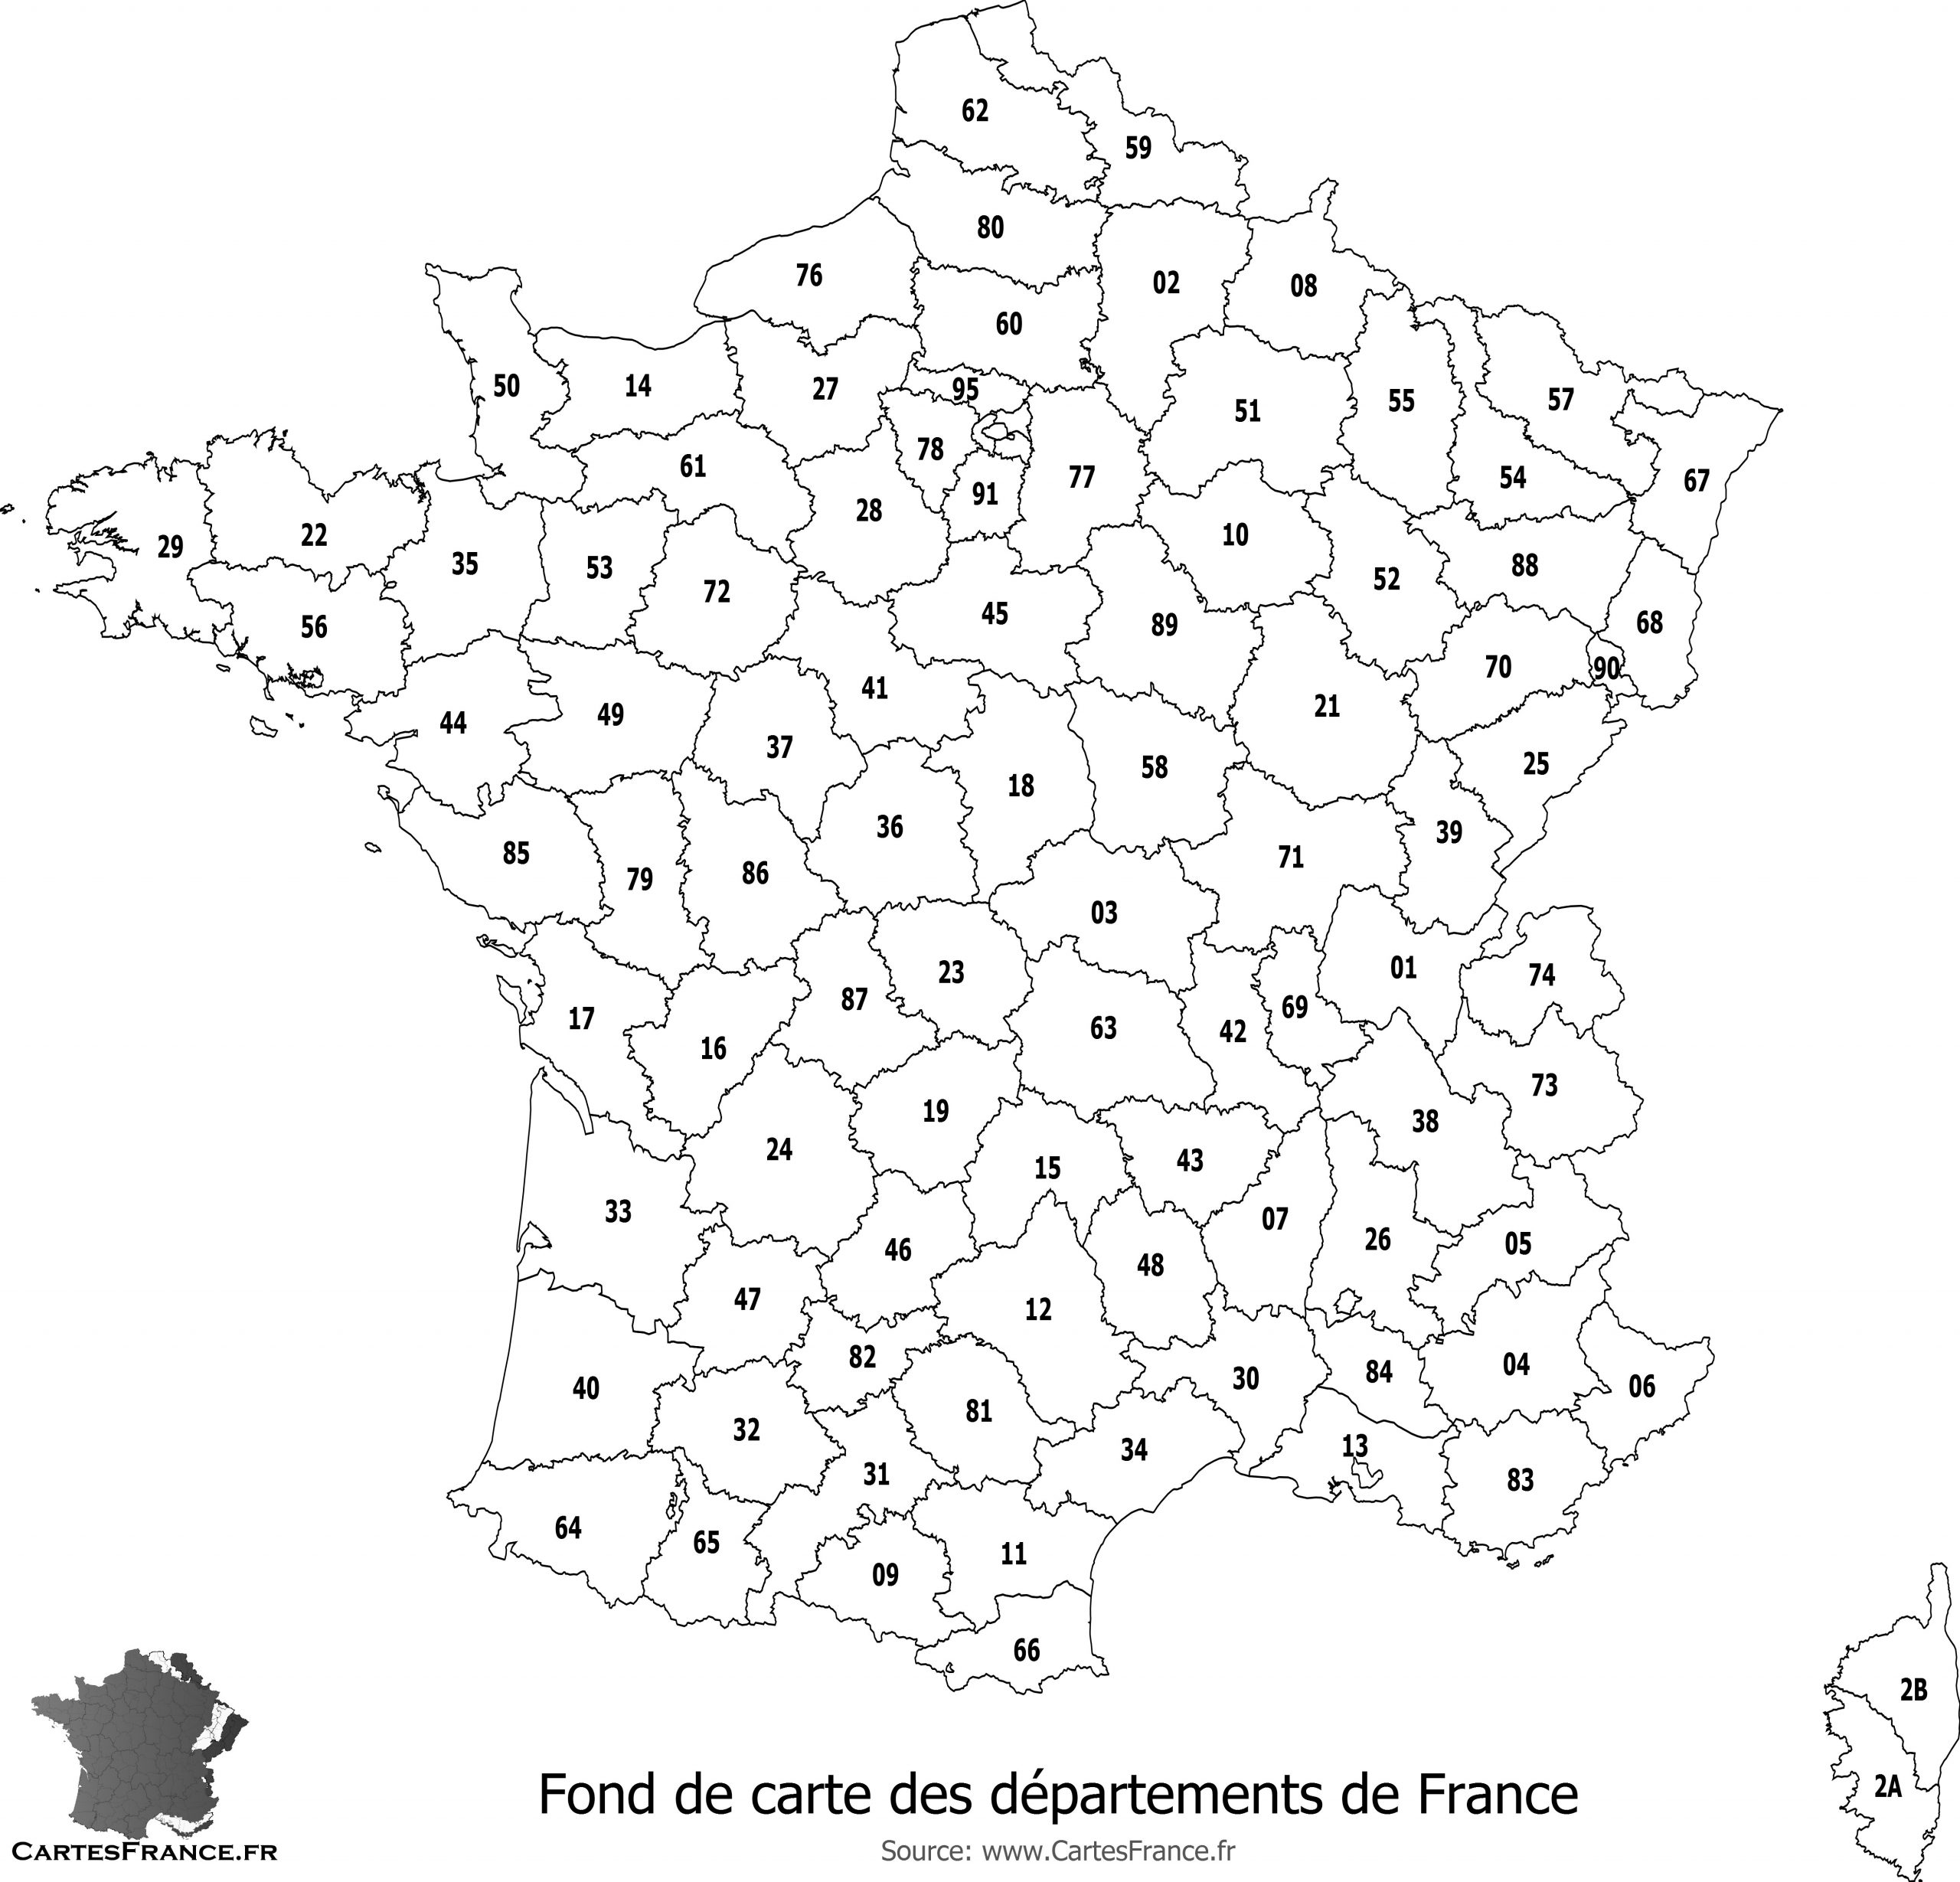 Fond De Carte Des Départements De France destiné Carte De France Des Départements À Imprimer